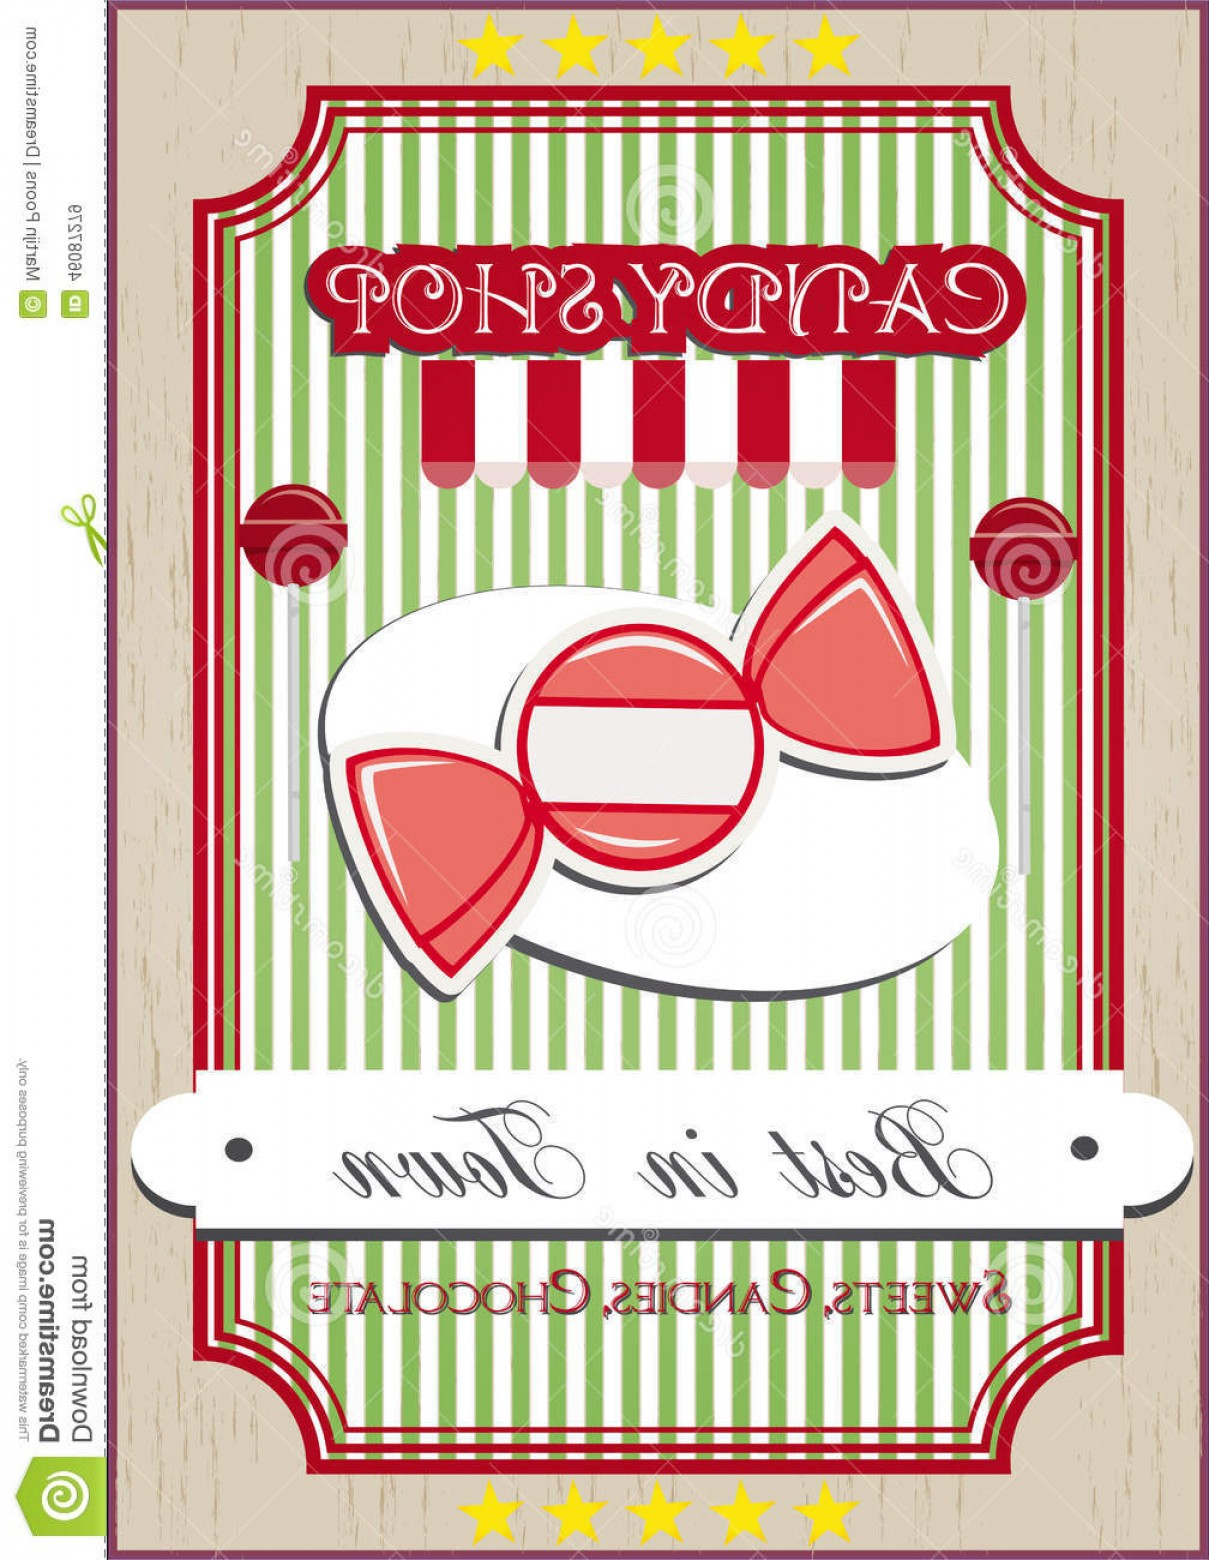 Candy Shop Vector: Stock Illustration Candy Shop Vintage Poster Retro Background Image